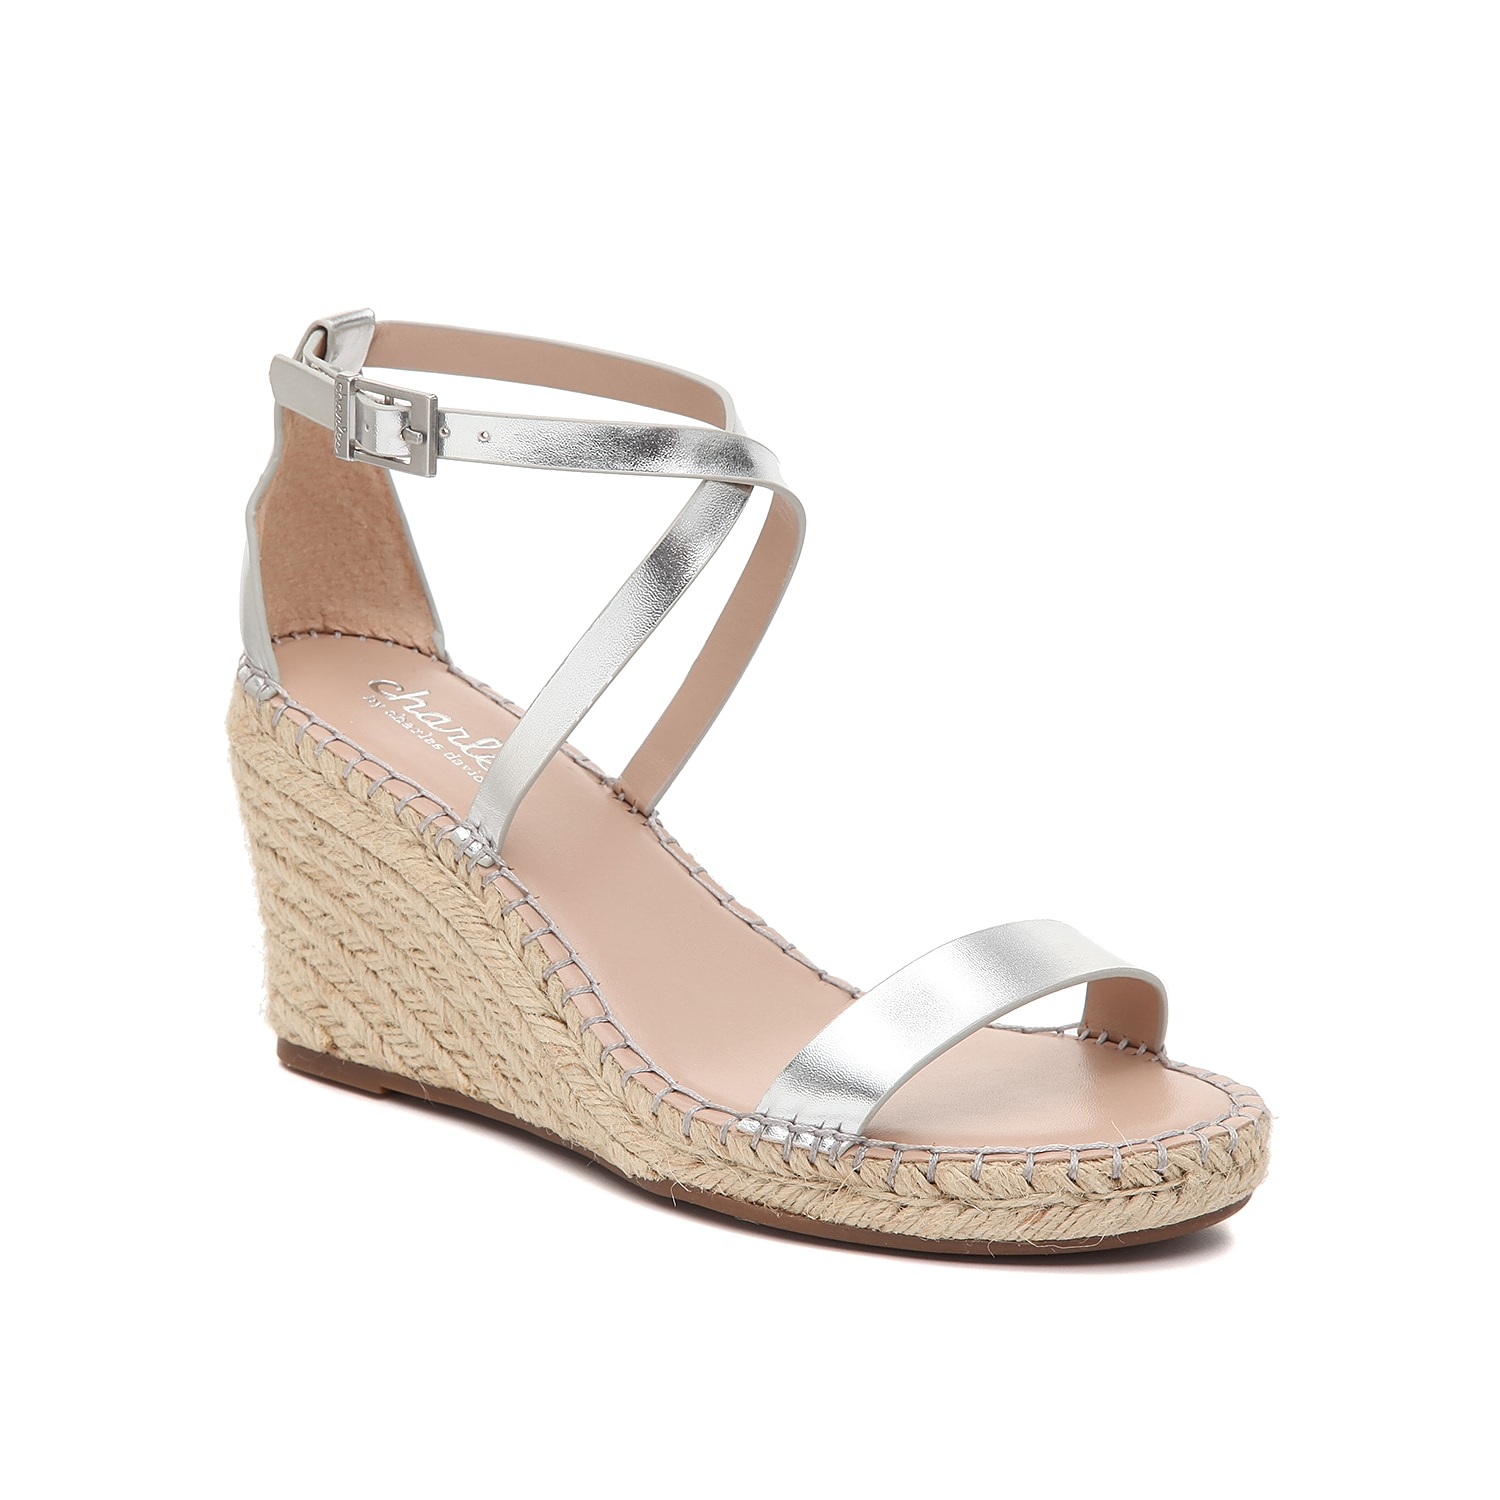 Feel sophisticated and fun in the Nola sandals from Charles by Charles David. This pair features crisscross straps at the ankle and an espadrille wedge heel for textural enticement.